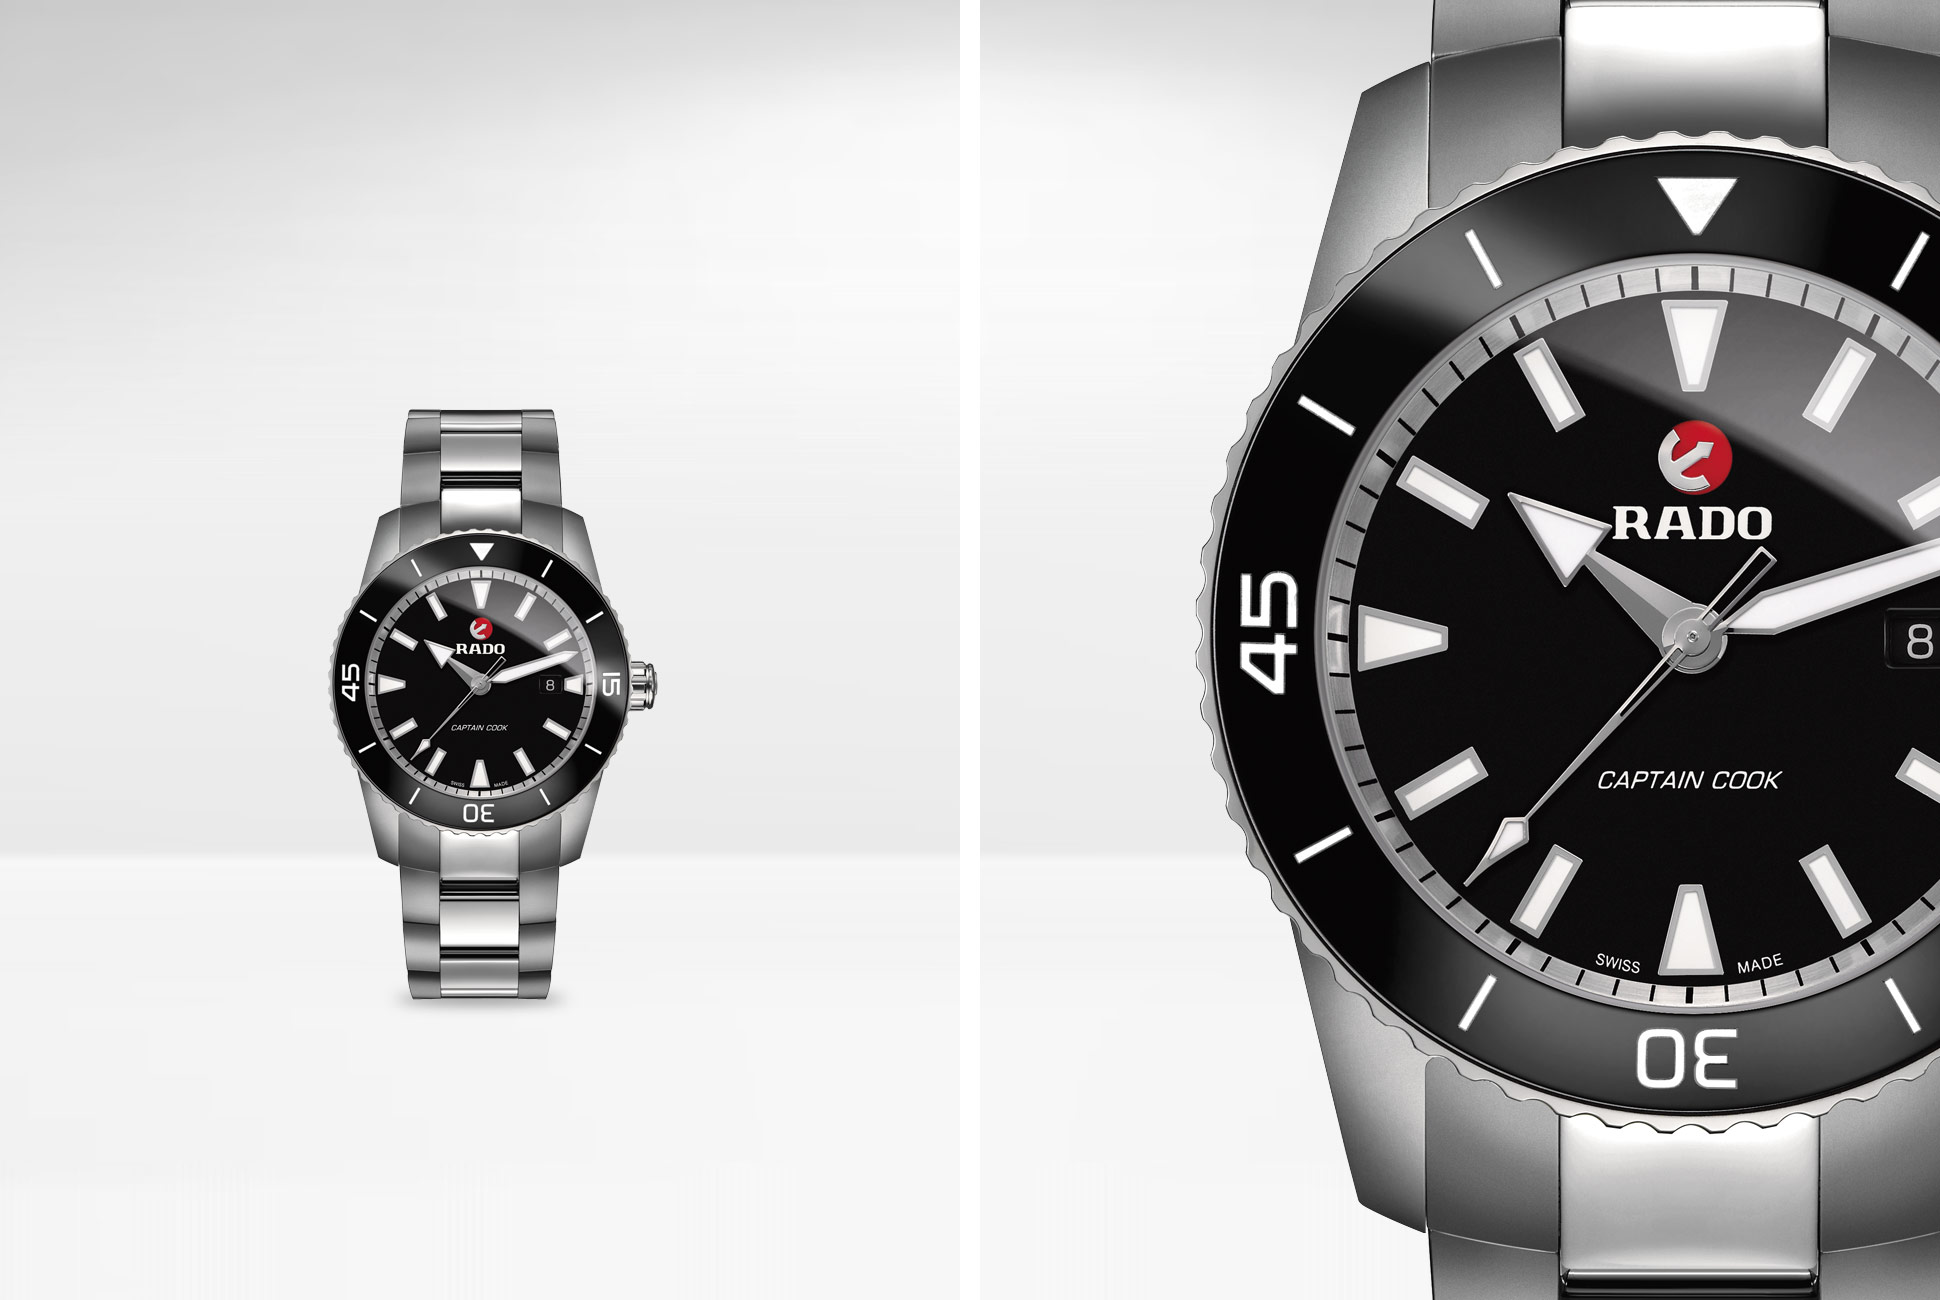 Buying Guide: The 10 Best Titanium Watches You Can Buy